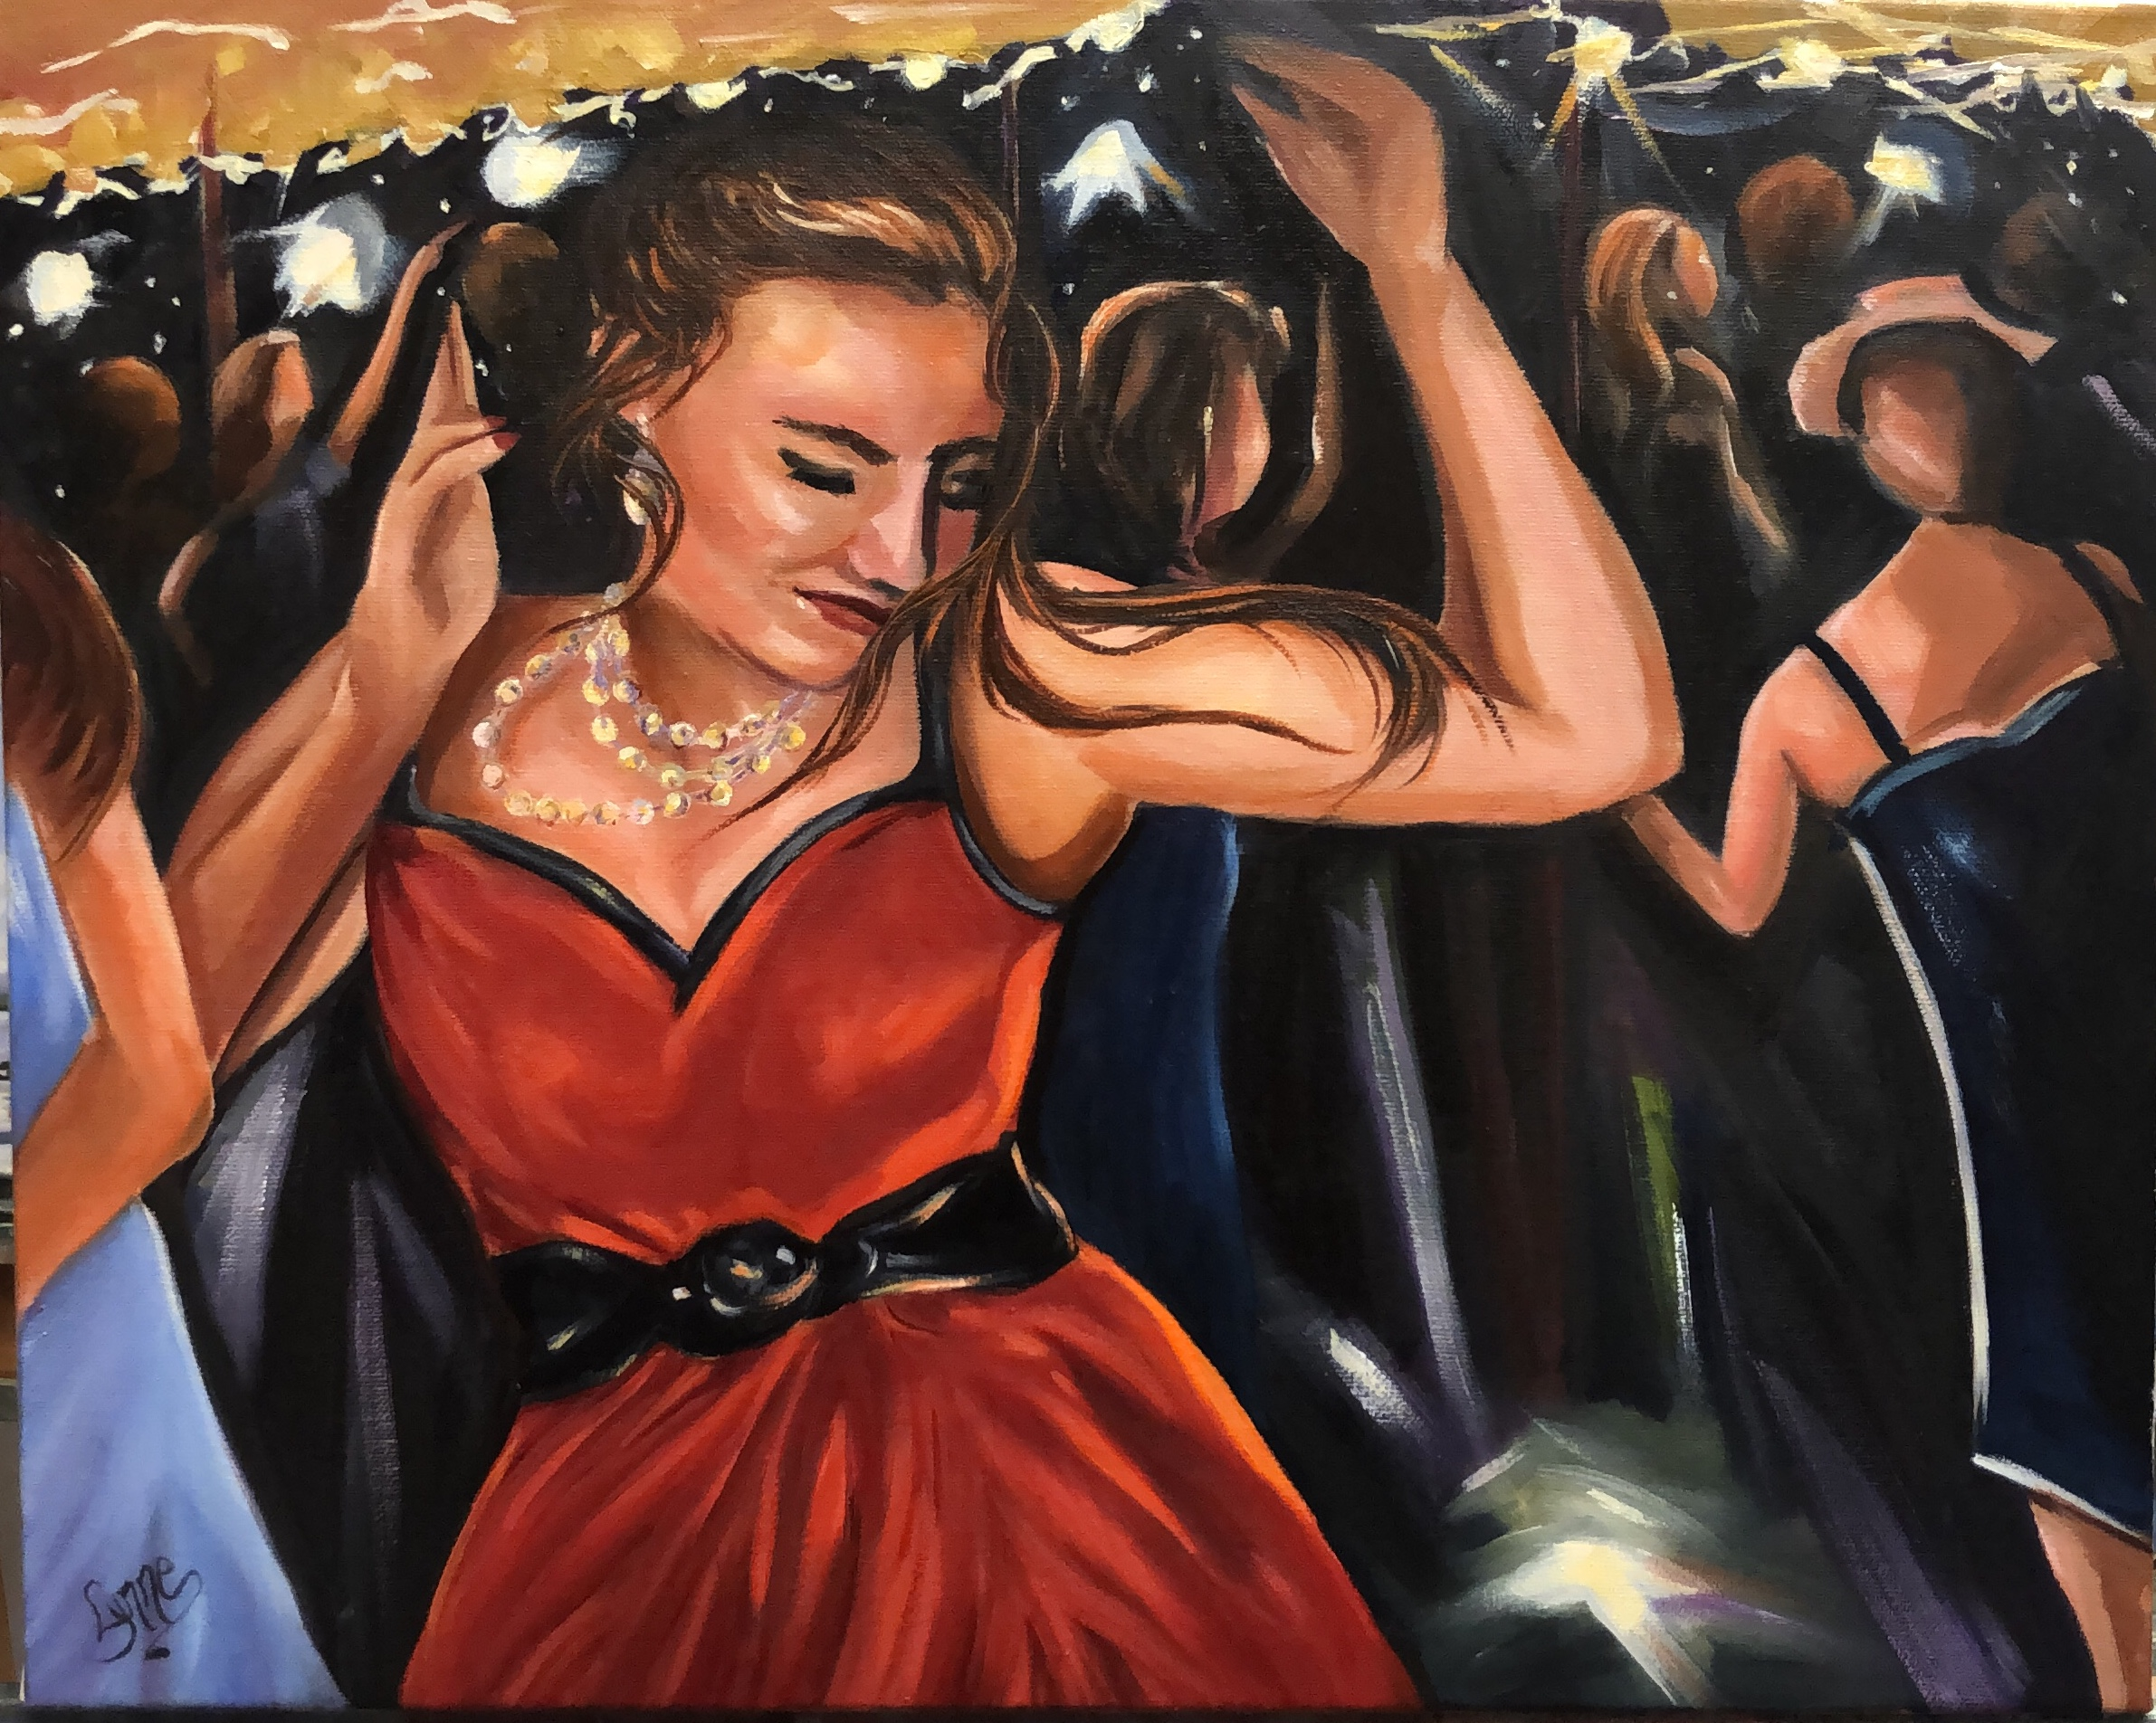 Painting of a girl in a red dress by Lynne Rempel.